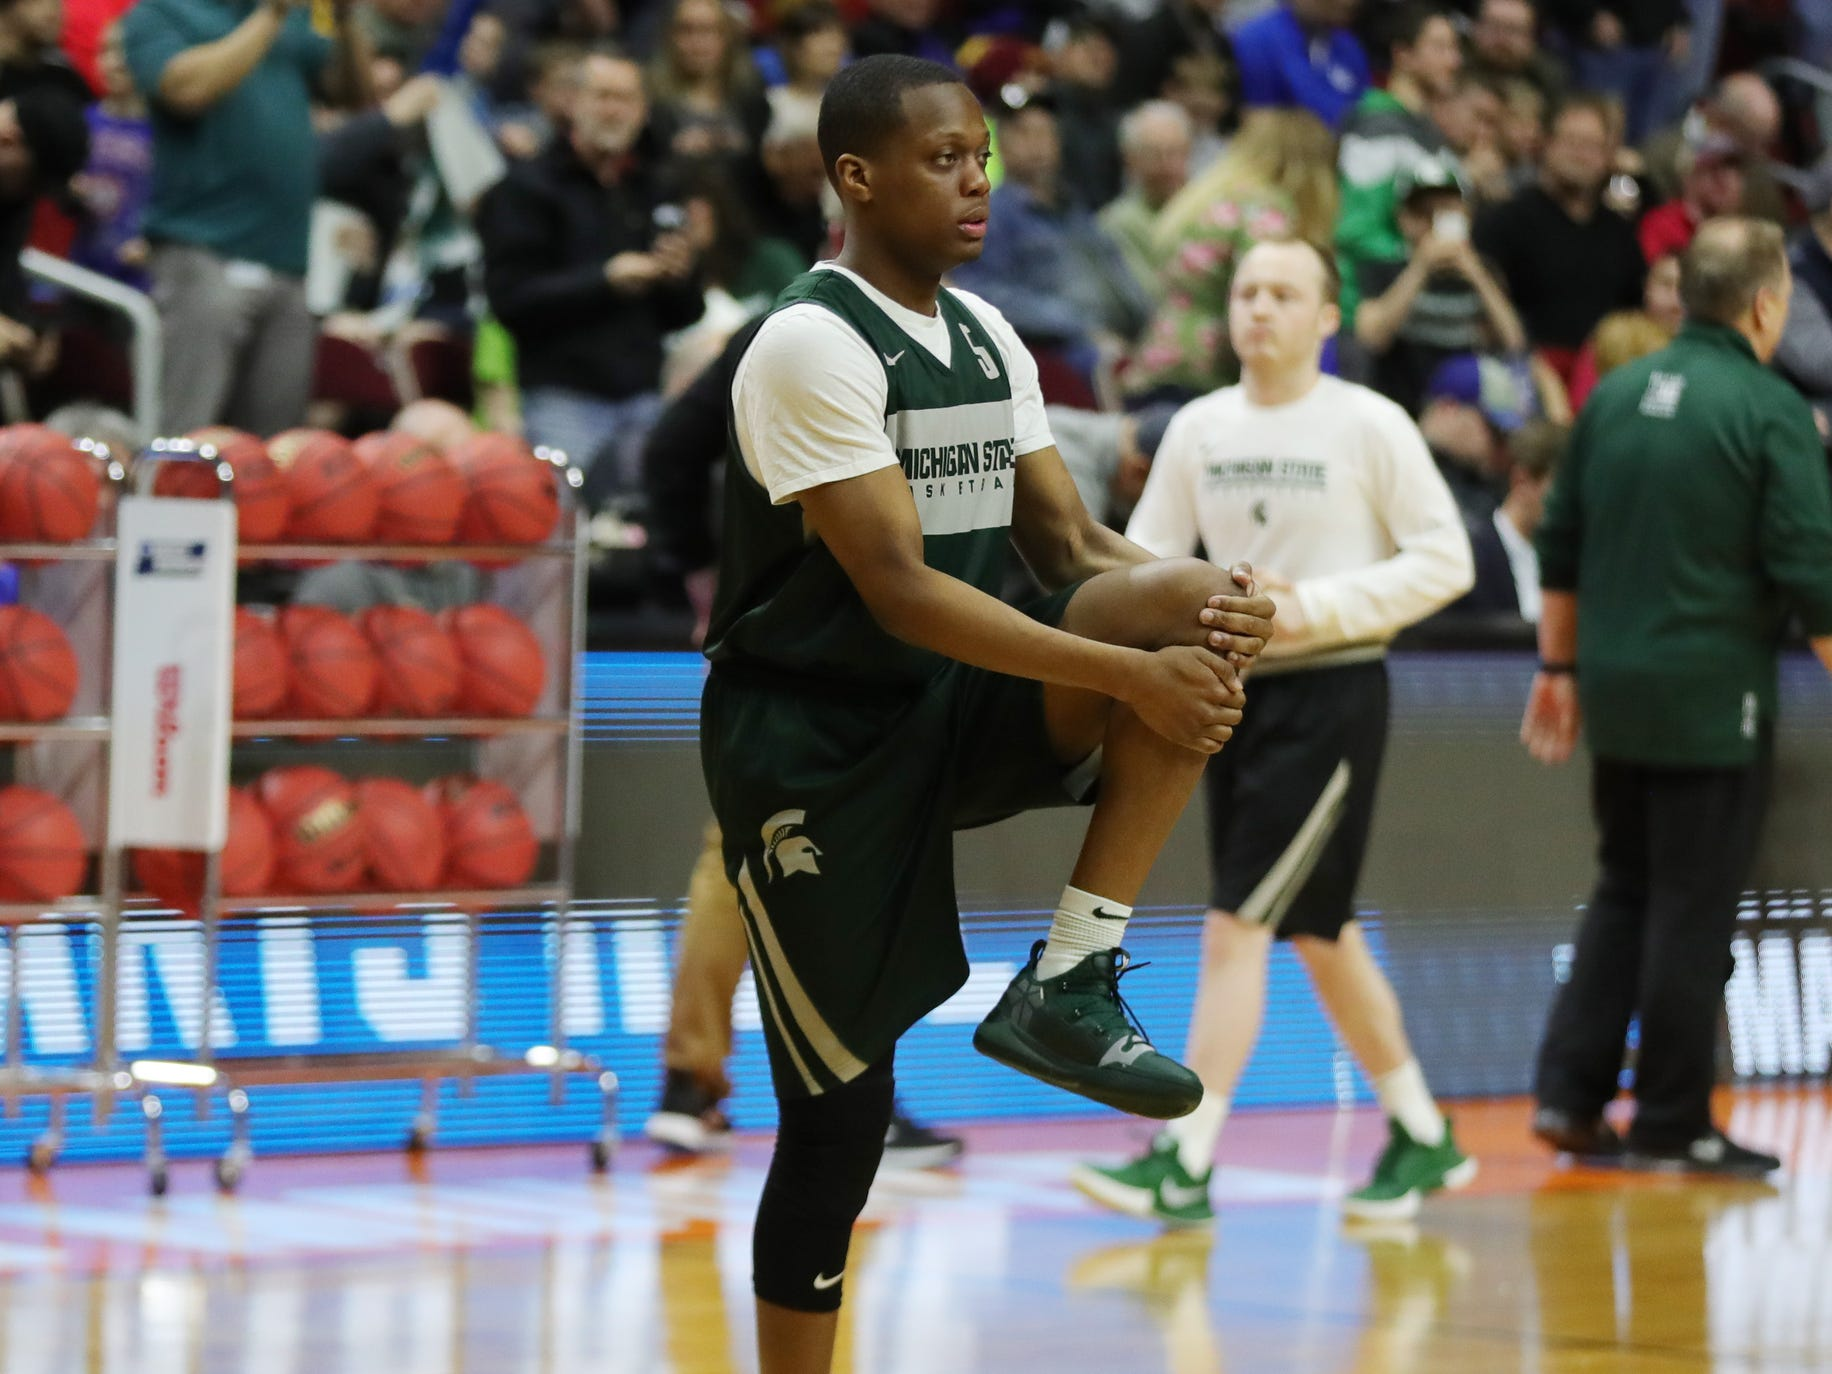 Michigan State guard Cassius Winston goes through drills for the first-round NCAA tournament game against Michigan State on Wednesday, March 20, 2019 at Wells Fargo Arena in Des Moines, Iowa.